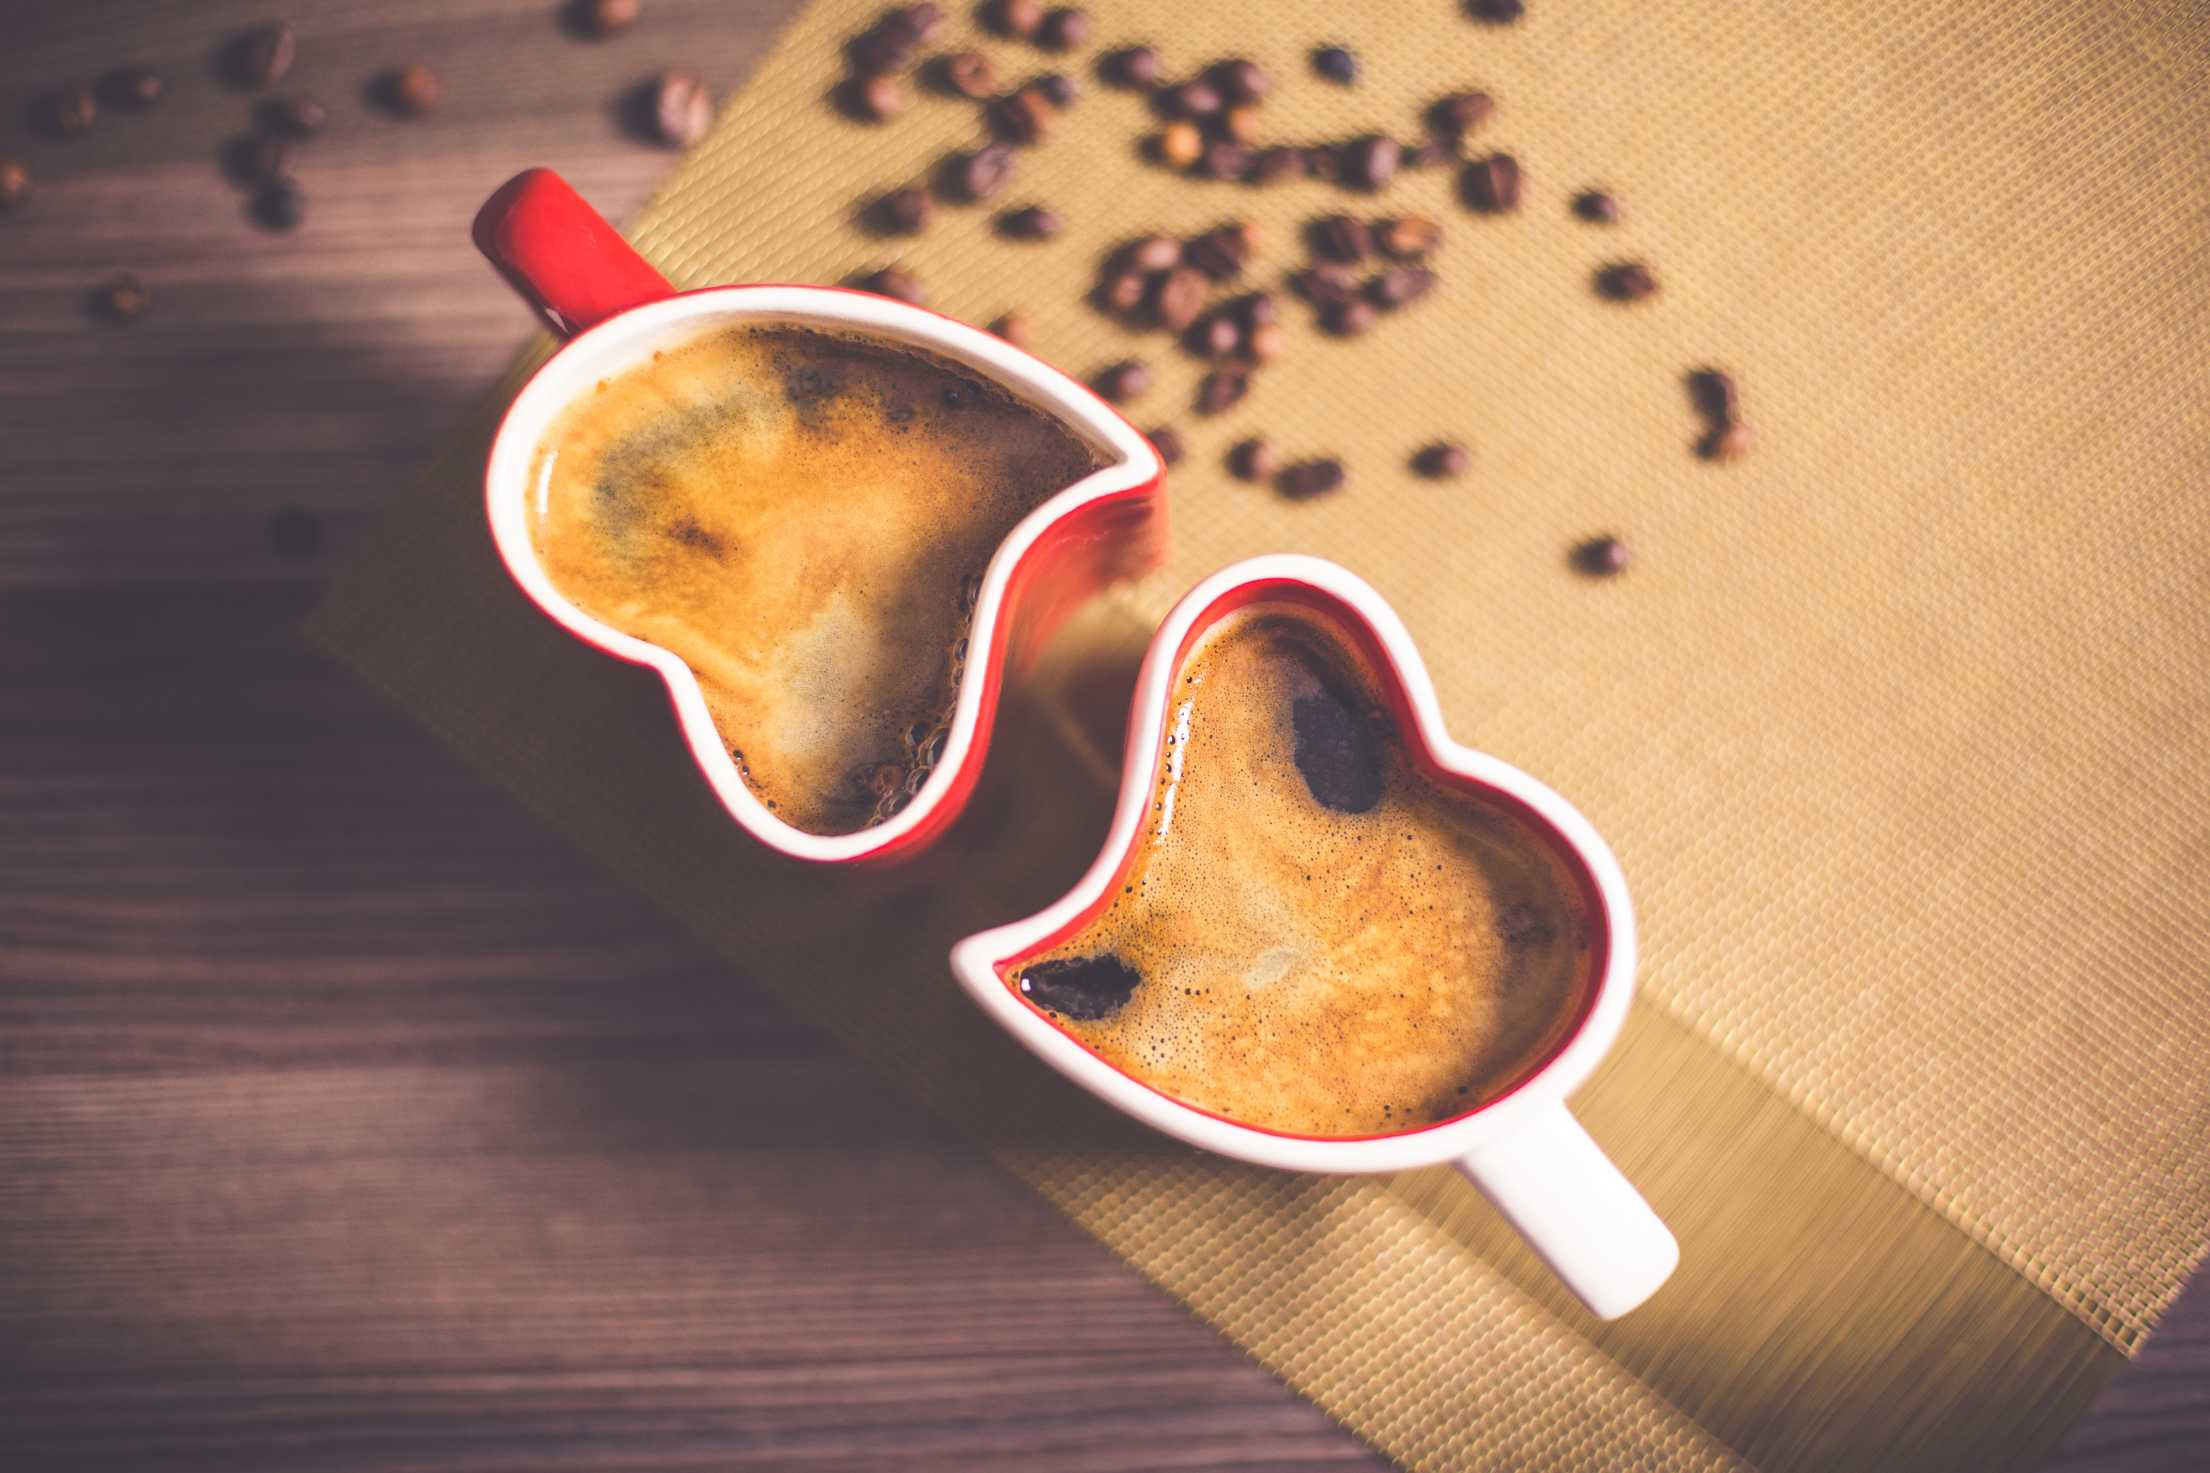 lovely and romantic heart coffee cups free stock photos picjumbo.com  - Valentýnské fotografie zdarma – picjumbo.com